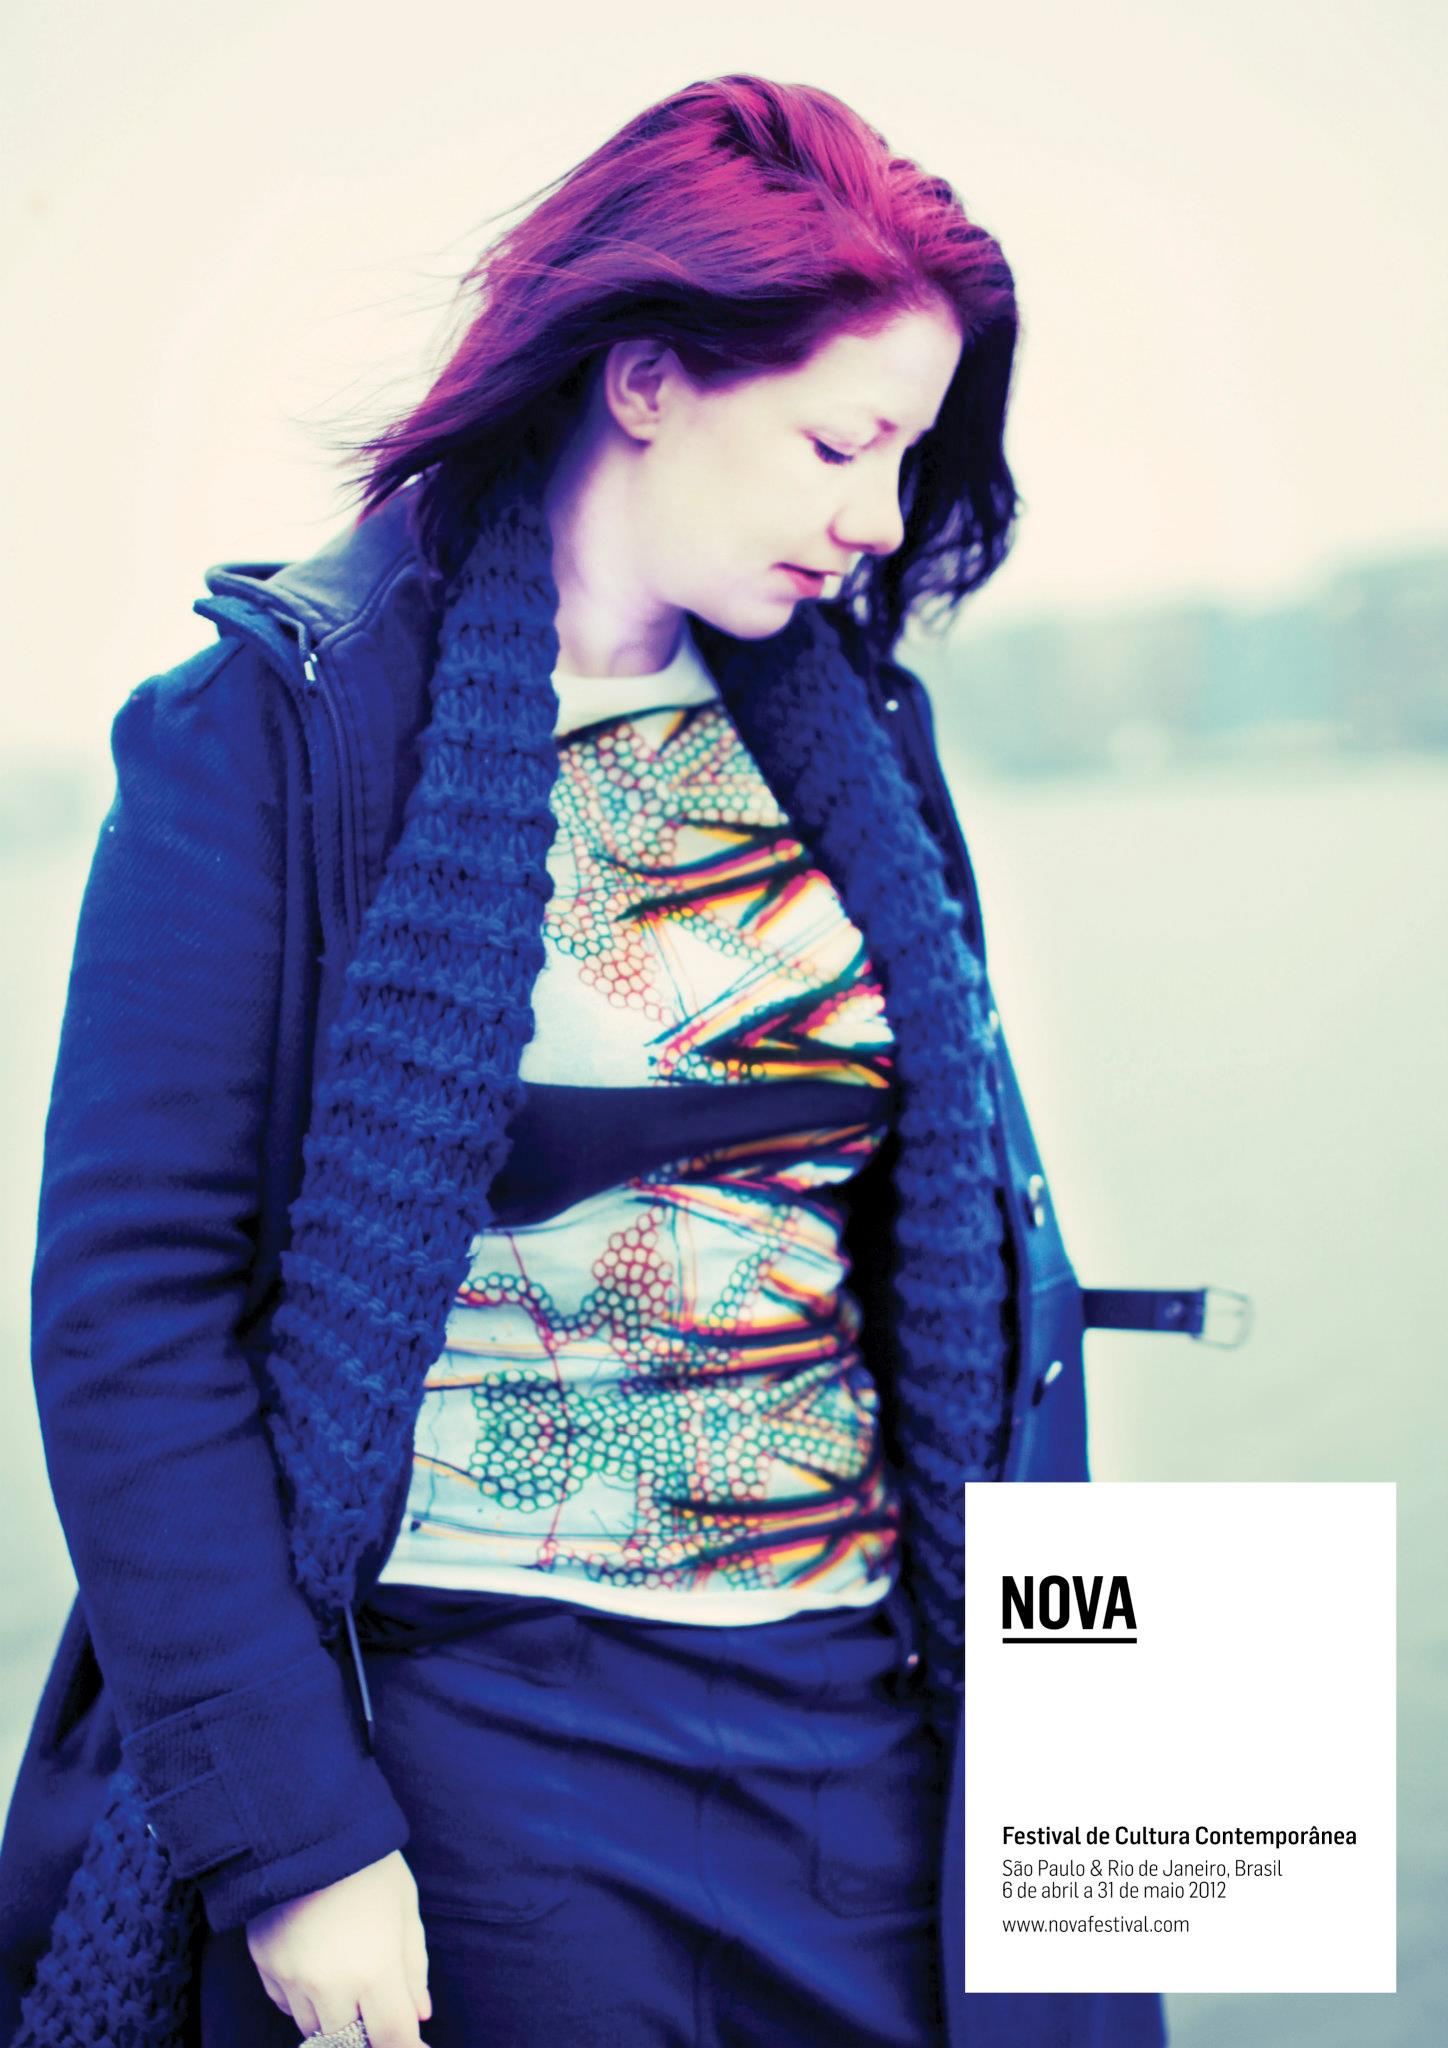 My photo for the Nova 2012 Comunication campaign